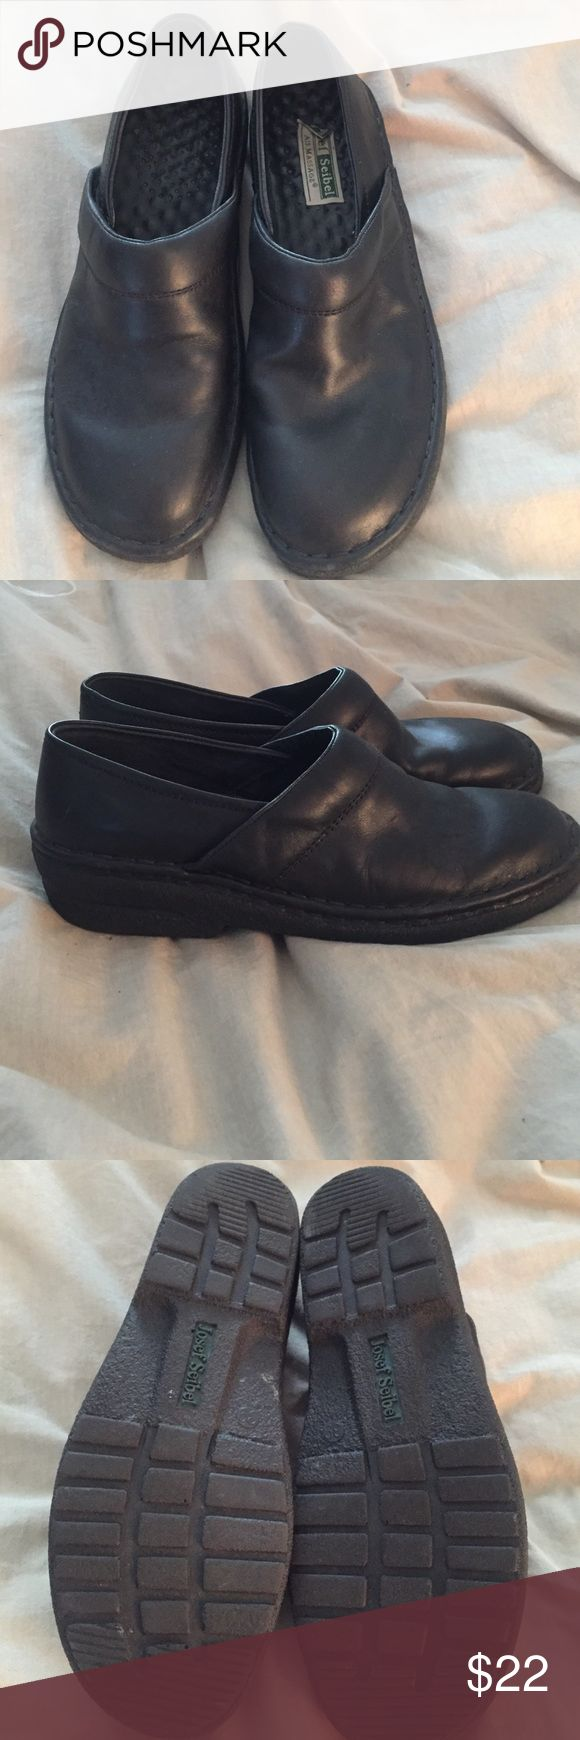 Josef Seibel Black Slip-ons Comfort level!!  These versatile black slip on shoes will treat your feet right. Gently worn-signs of previous wear-minor wear on soles, brand label peeled back (shown) Josef Seibel Shoes Flats & Loafers